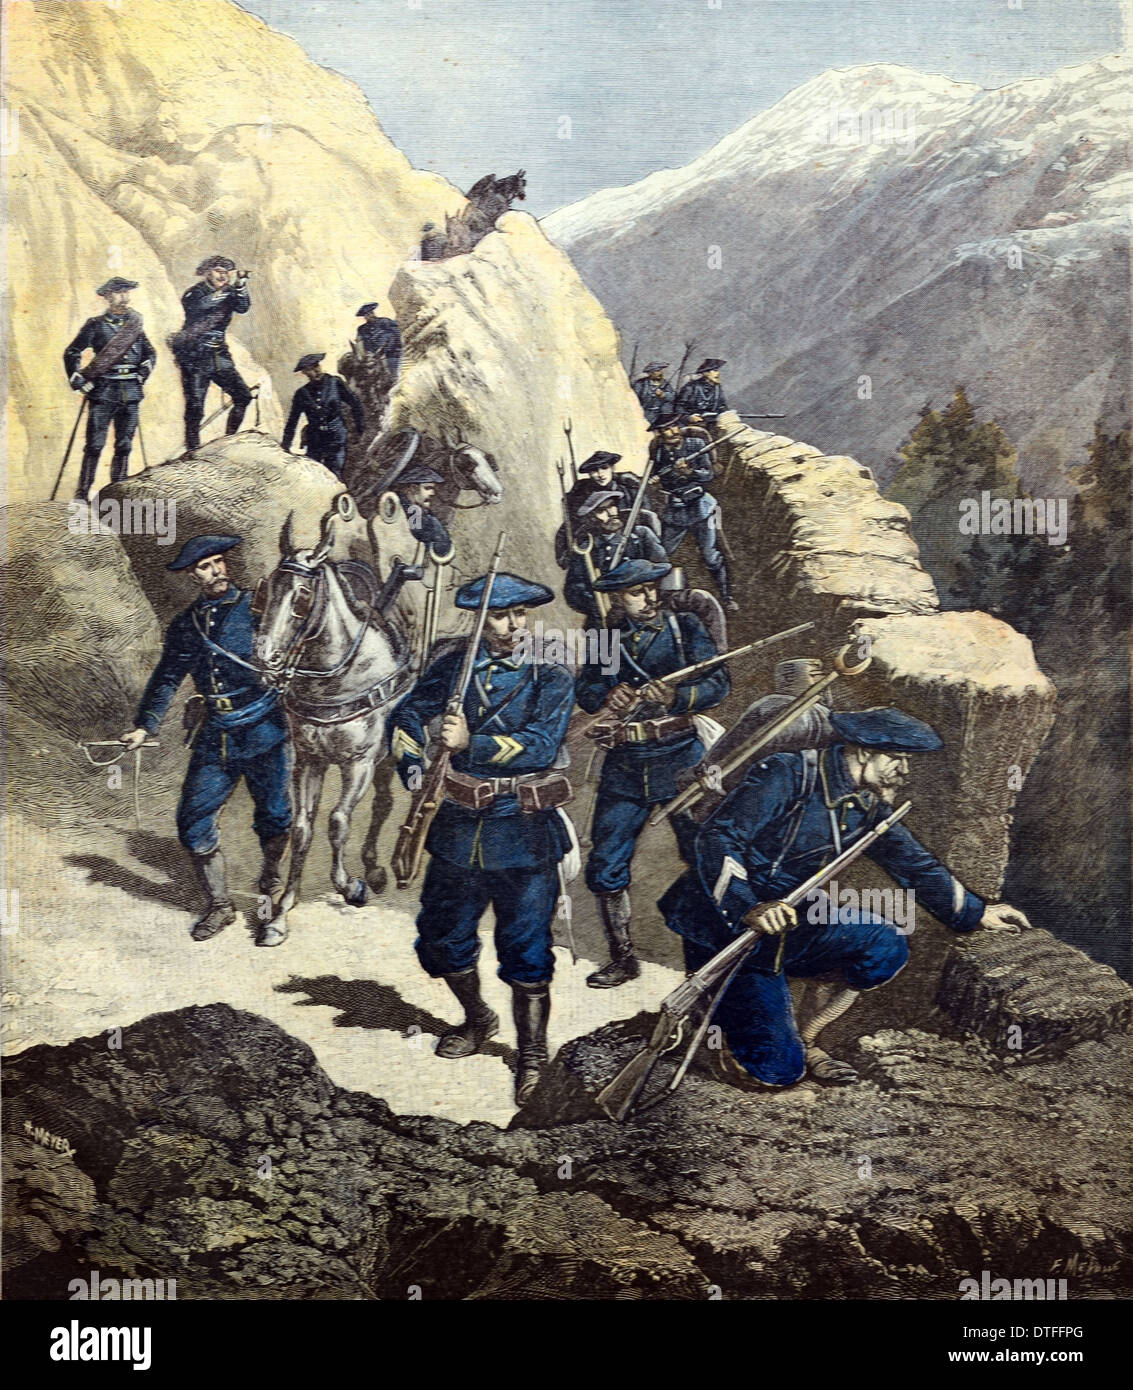 Chasseurs Alpins or French Mountain Infantry or Soldiers on Maneuvers in the French Alps1891 - Stock Image